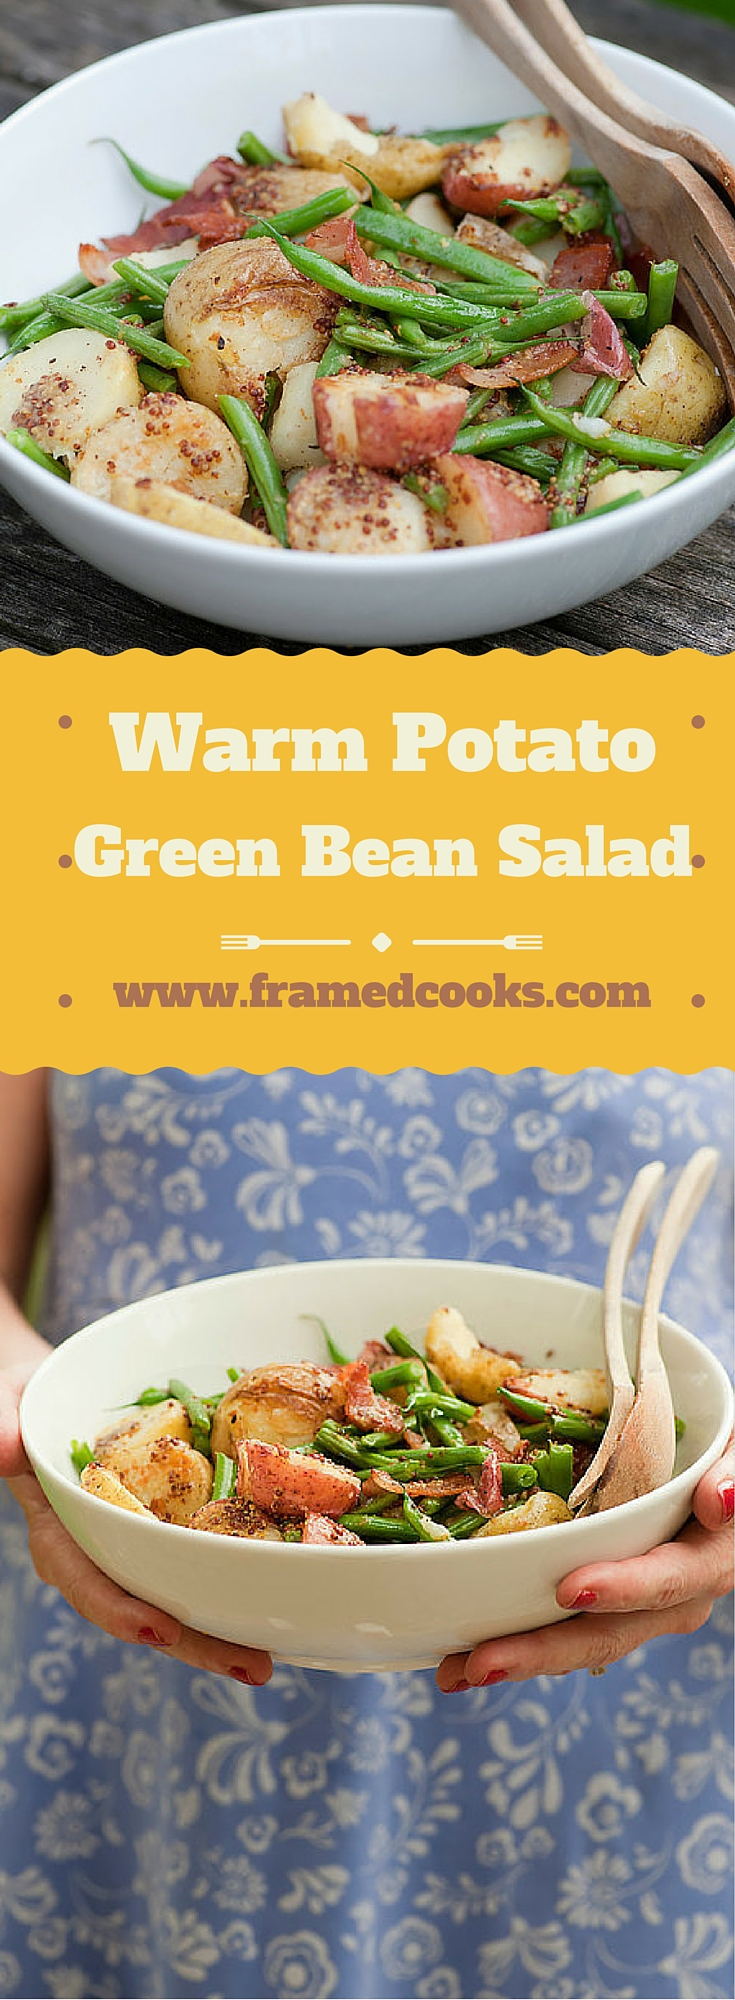 Spiff up your everyday potato salad by adding some fresh green beans and bacon, along with a little mustard to kick it all up!